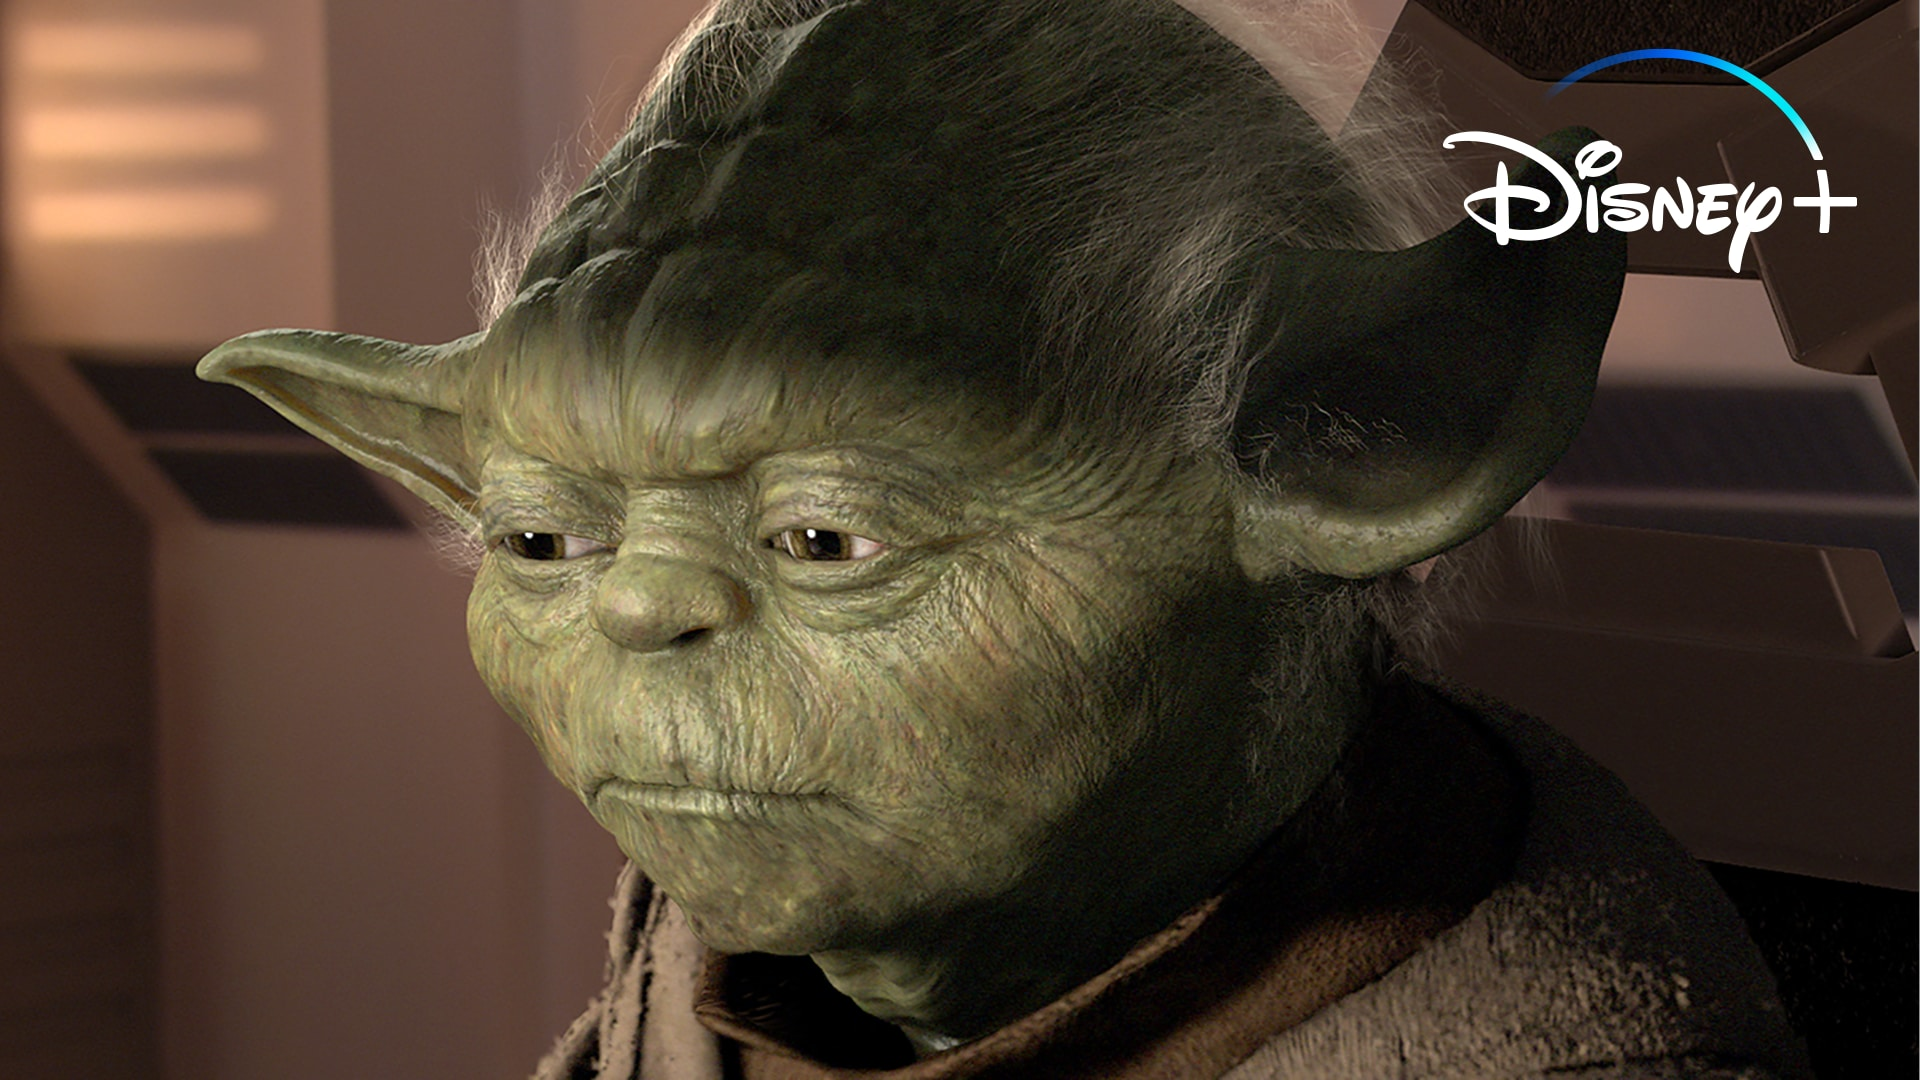 Yoda Tells It Like It Is | Disney+